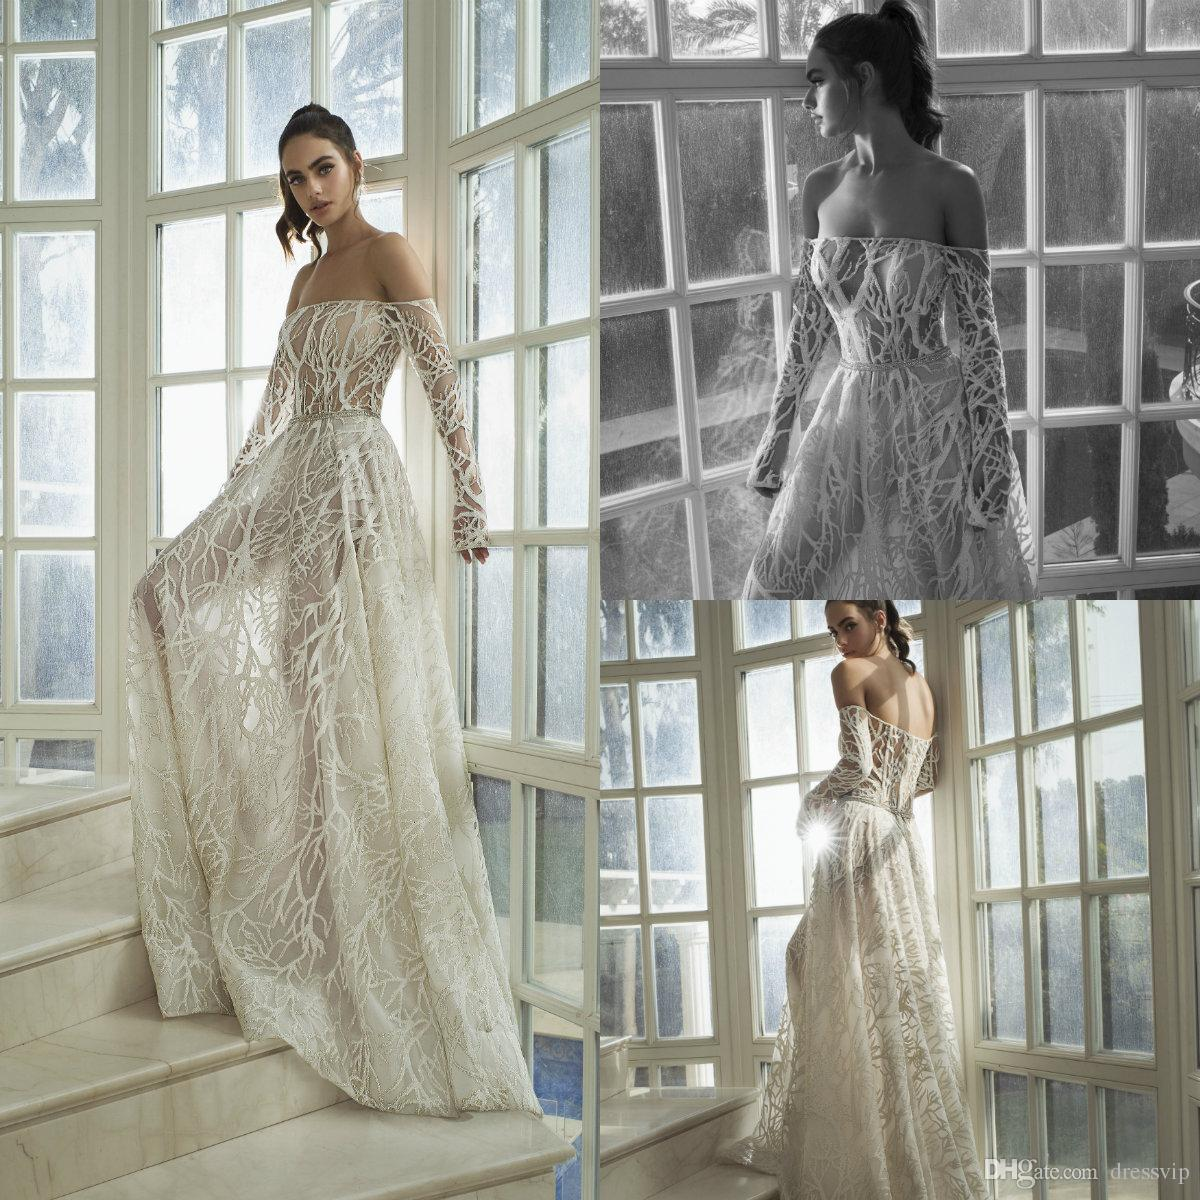 d1561dd6481 Discount 2019 Bohemian Long Sleeve Wedding Dresses Off The Shoulder Lace  Appliques A Line Beach Wedding Dress Custom Plus Size Country Bridal Gowns  Simple ...